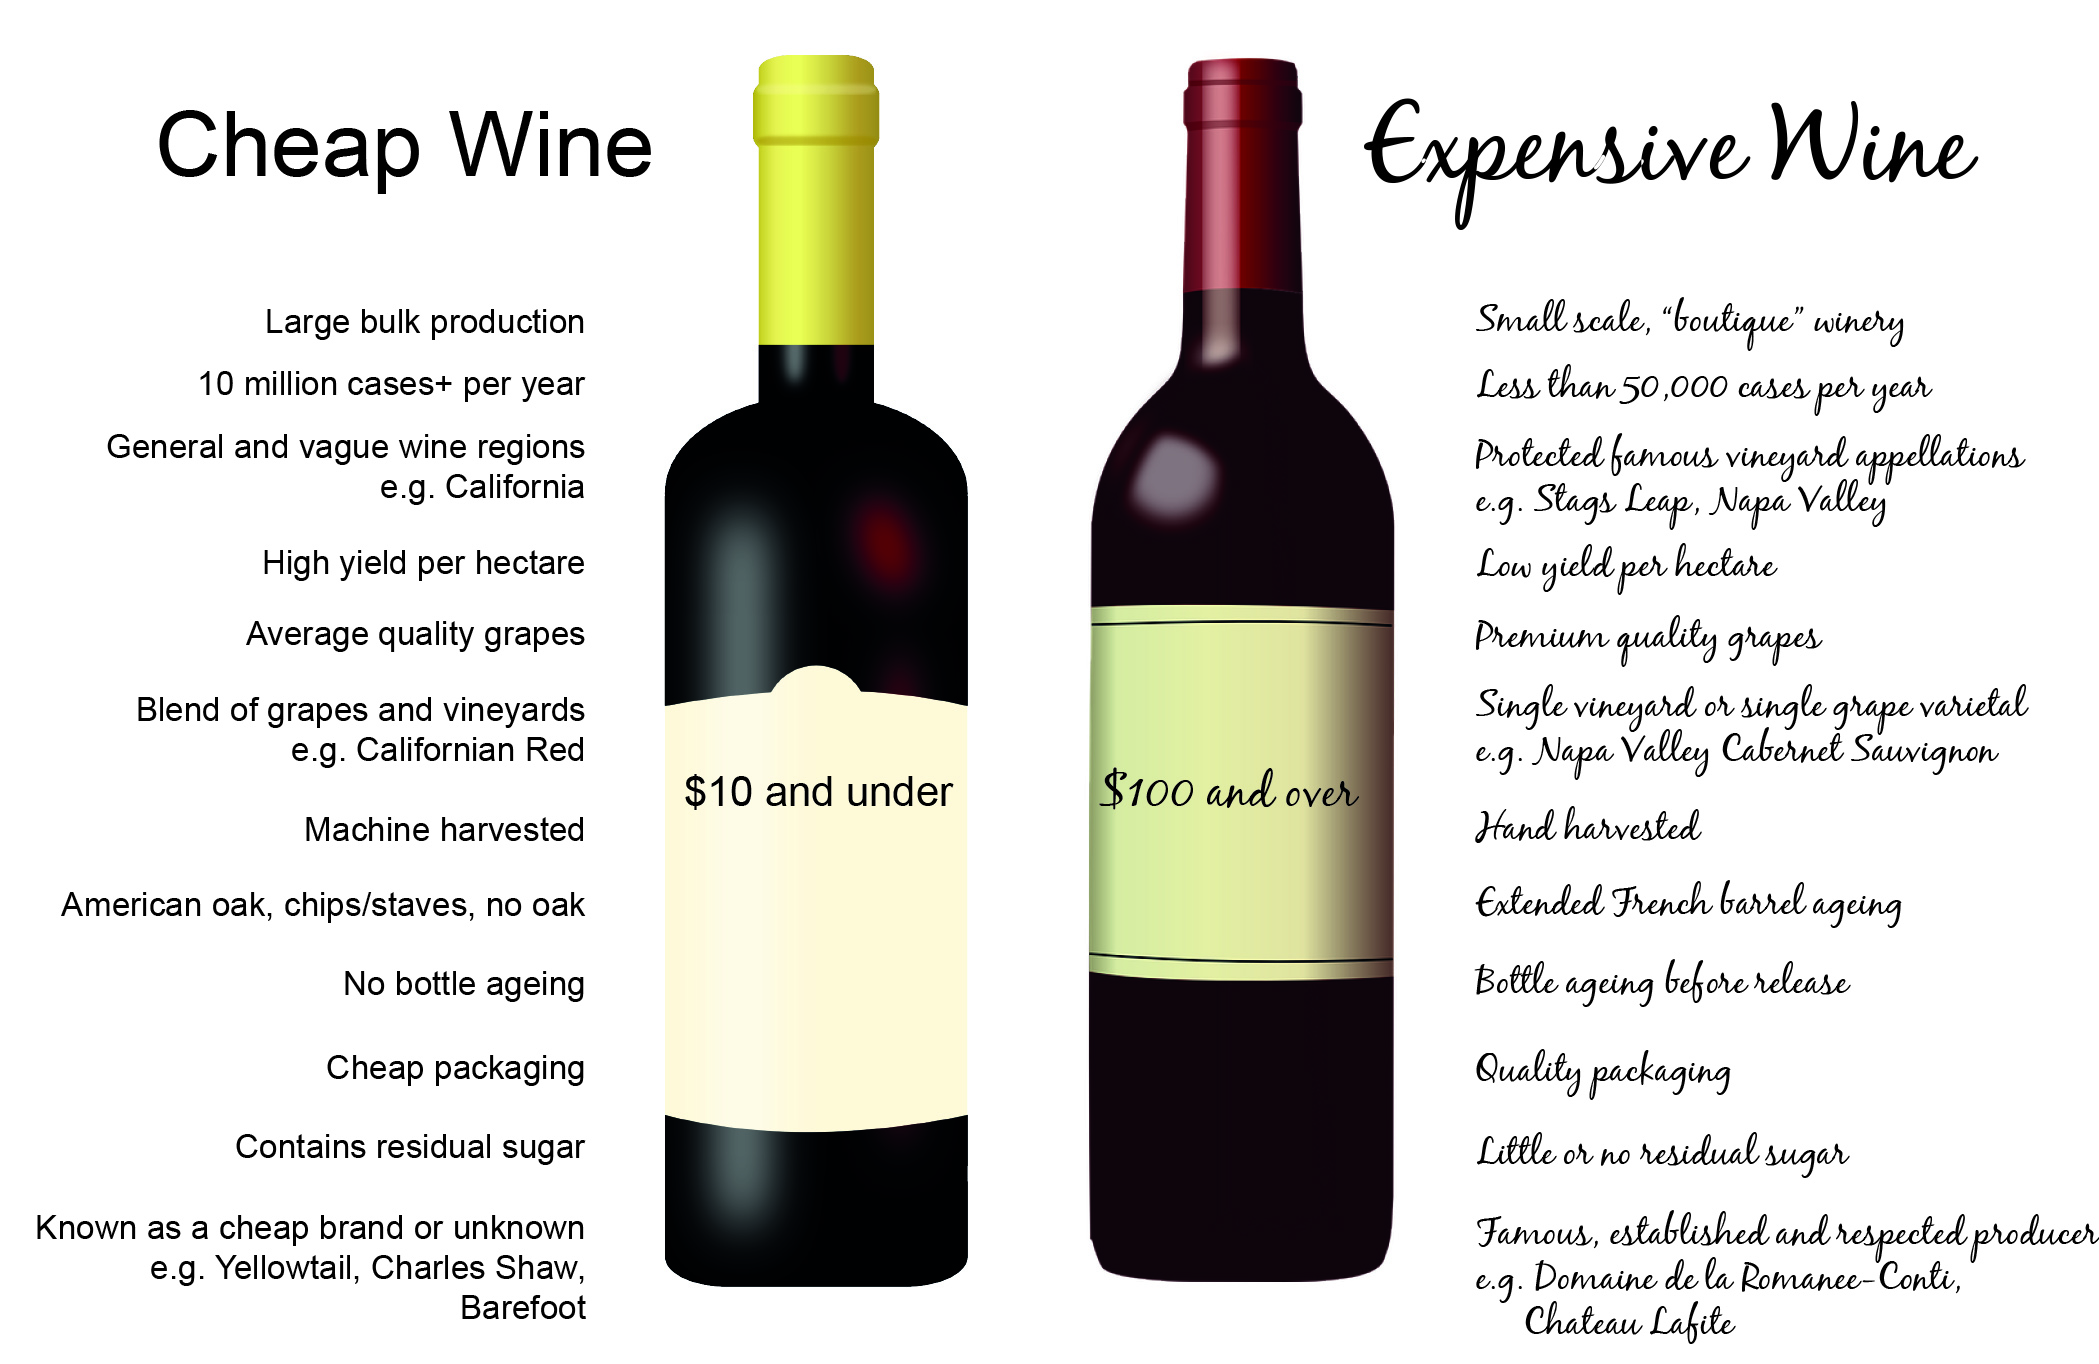 Why Is This Wine Expensive?